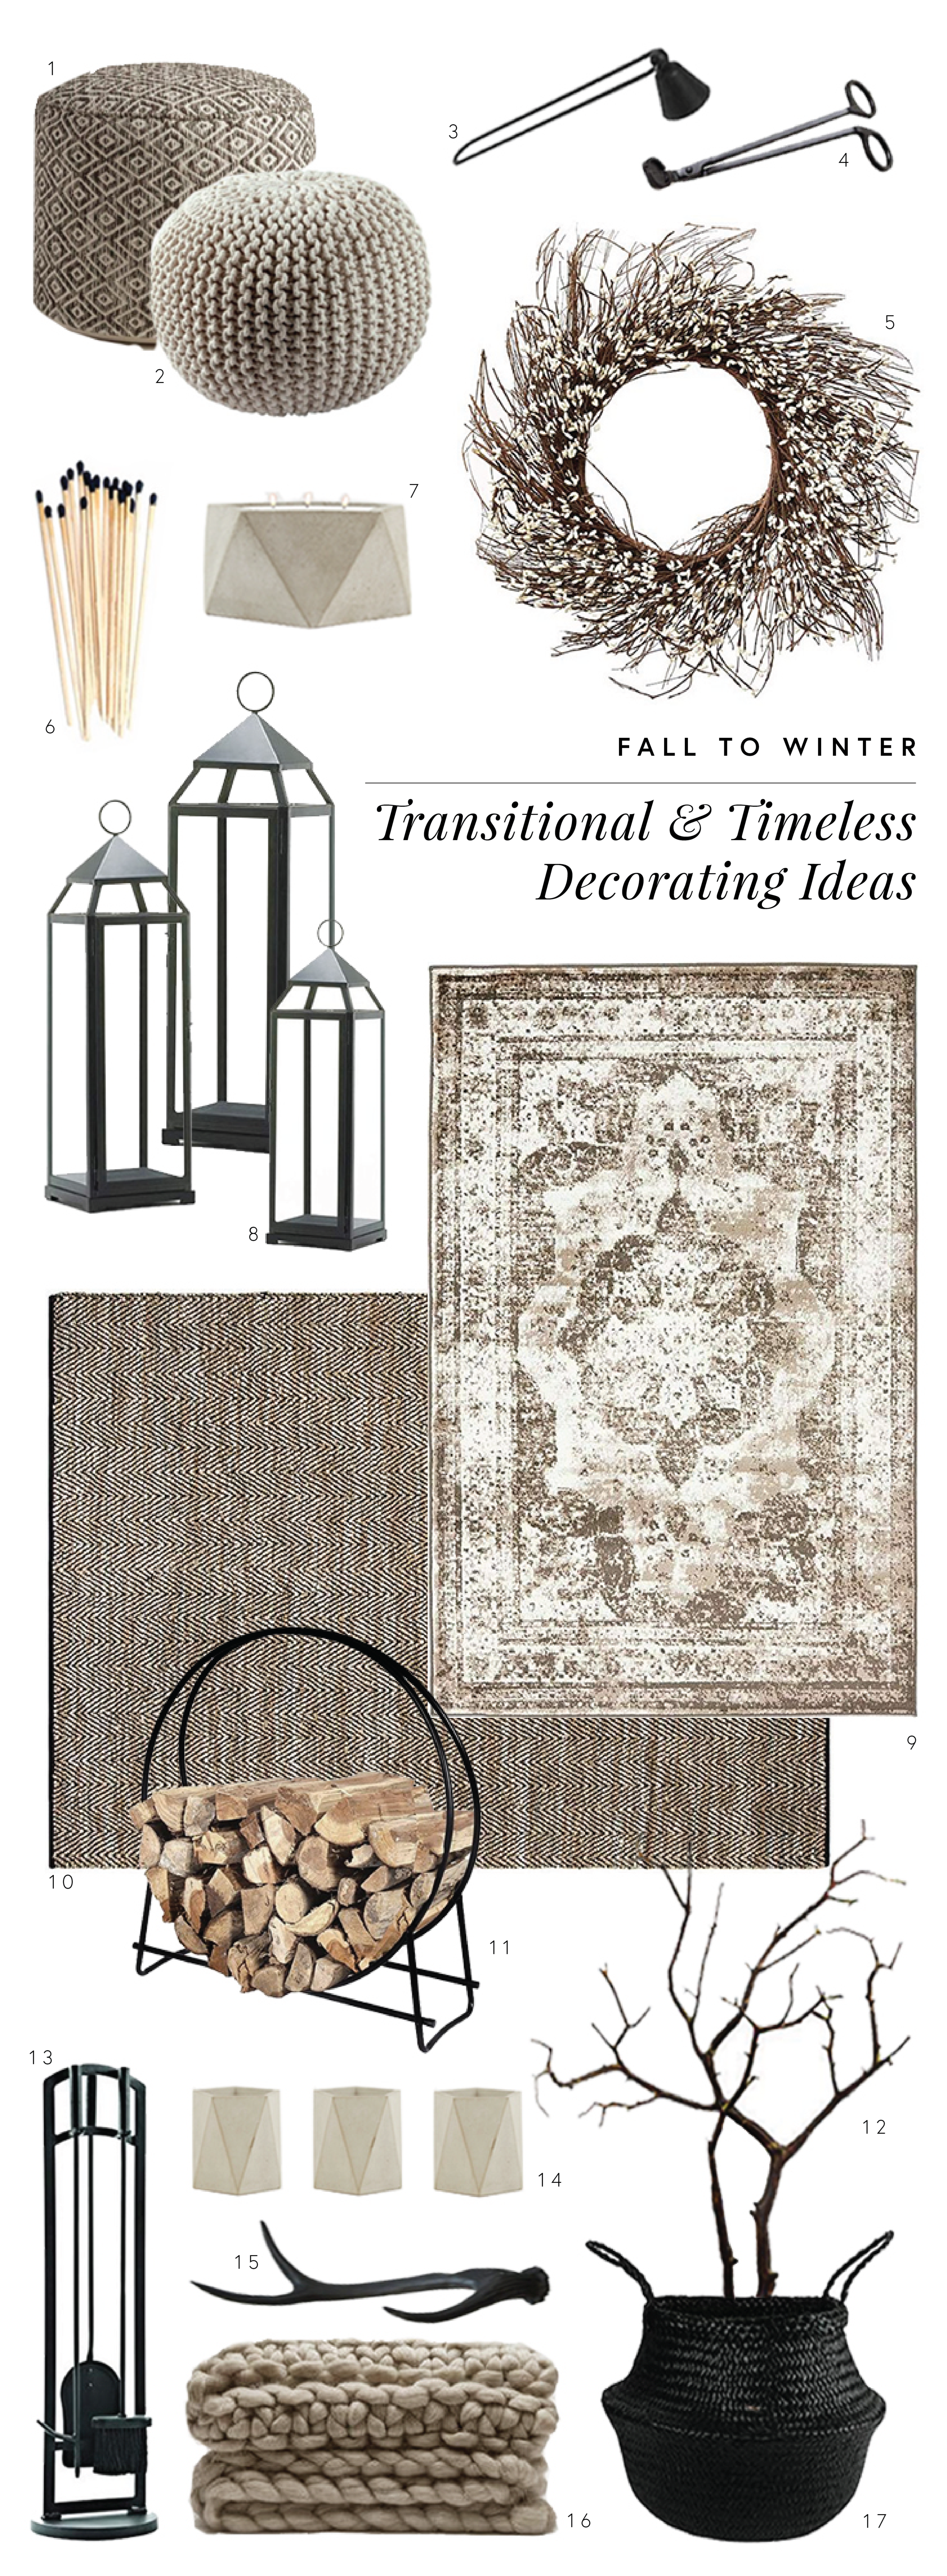 Fall to winter Decorating Ideas for a timeless and modern home